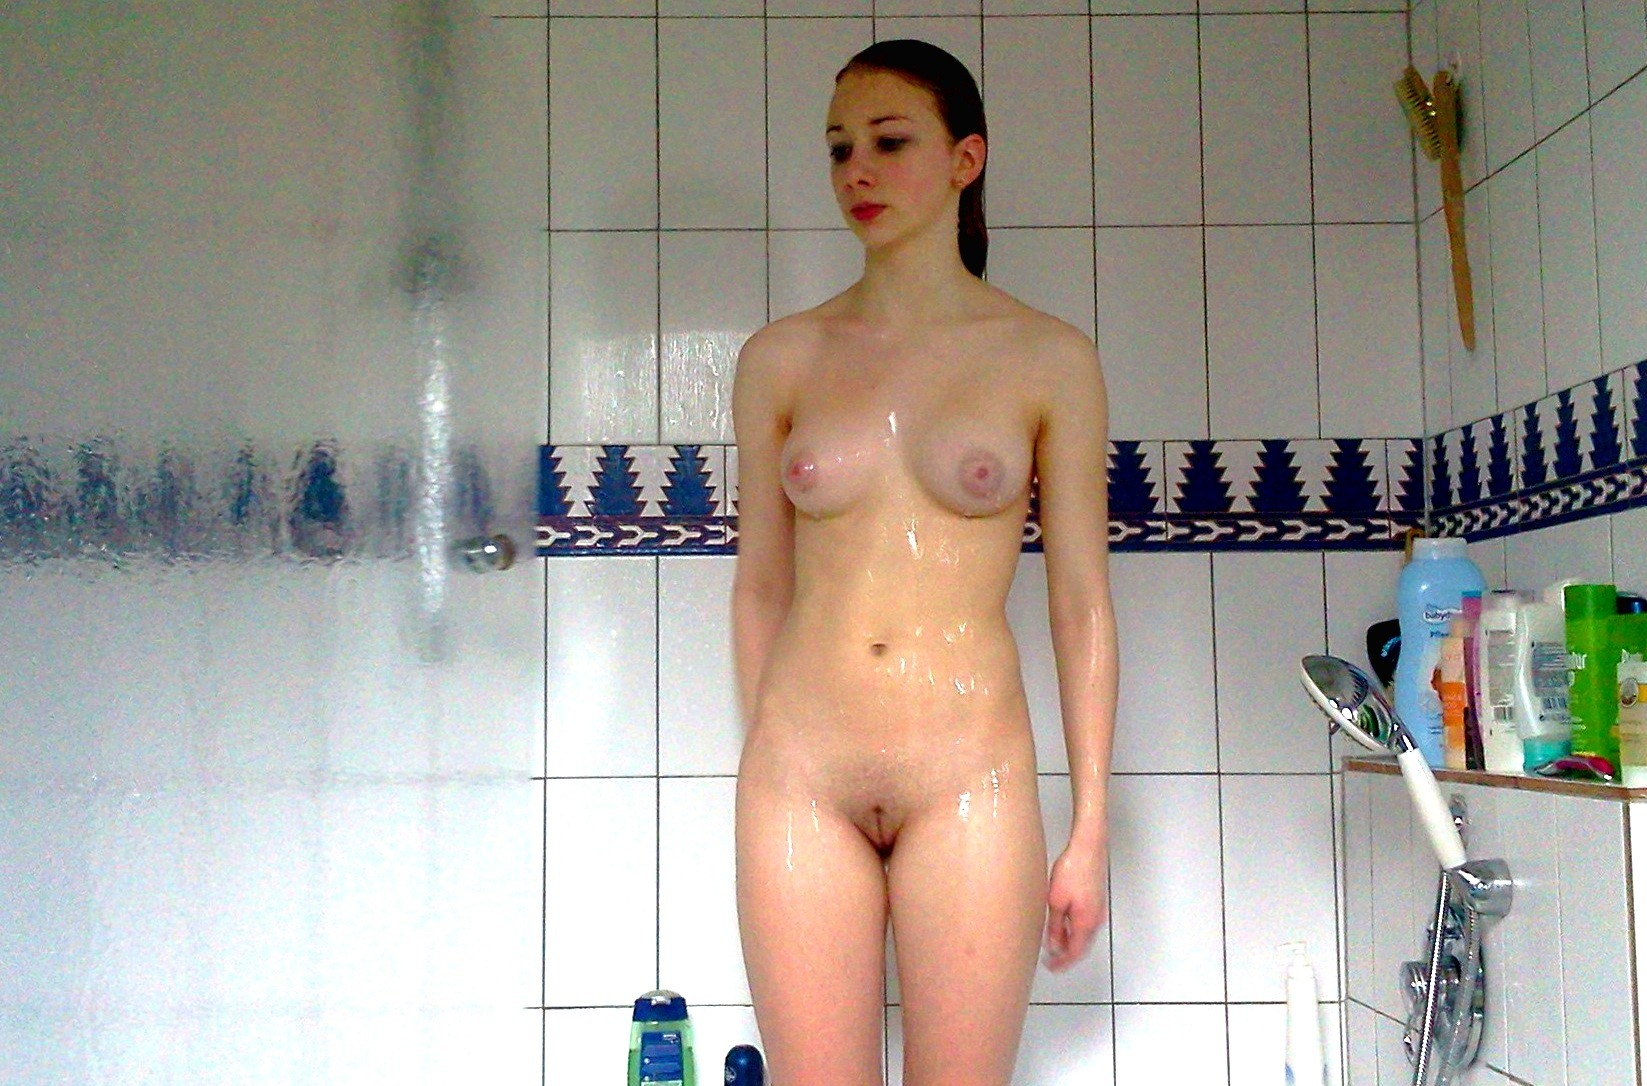 Amateur Nude Slut Taking A Shower  Free Texas Sex Chat Rooms-8525